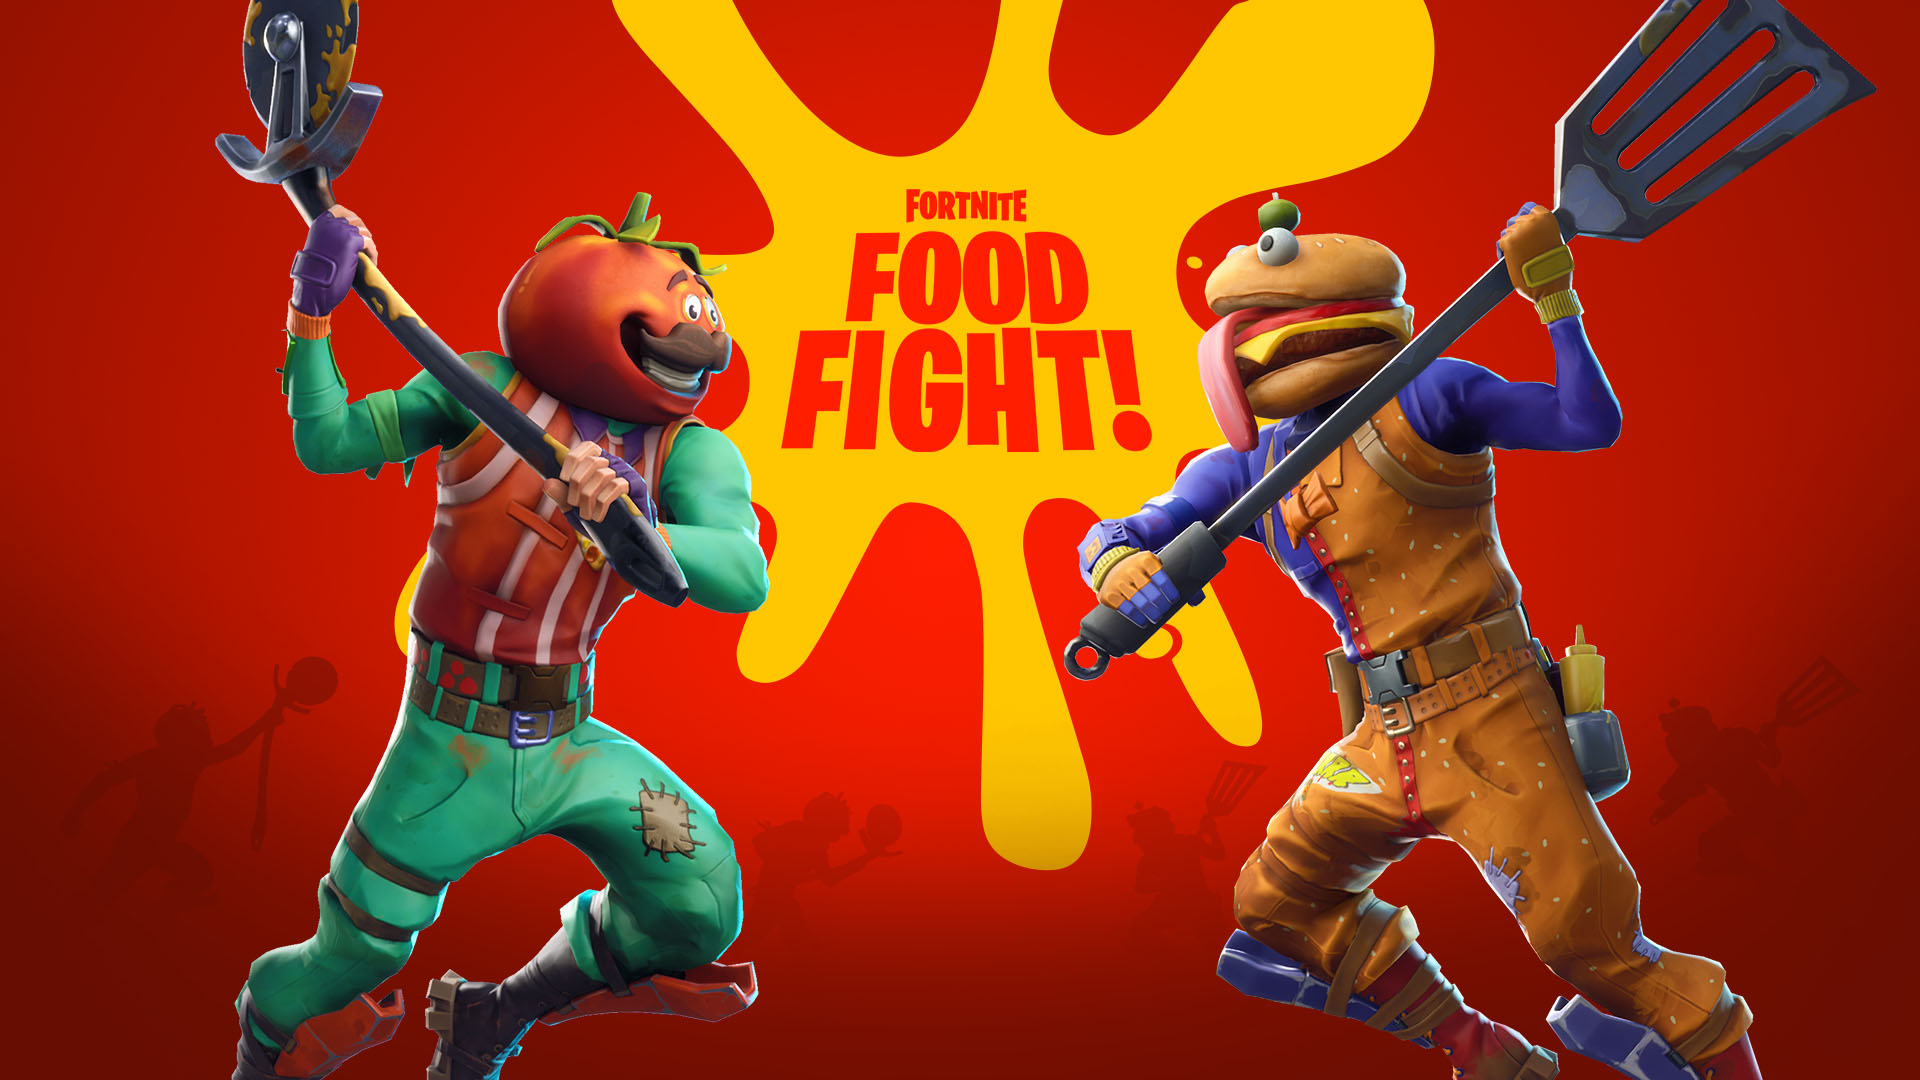 b3cdb3d6063a Fortnite update out now (version 6.30) - Food Fight